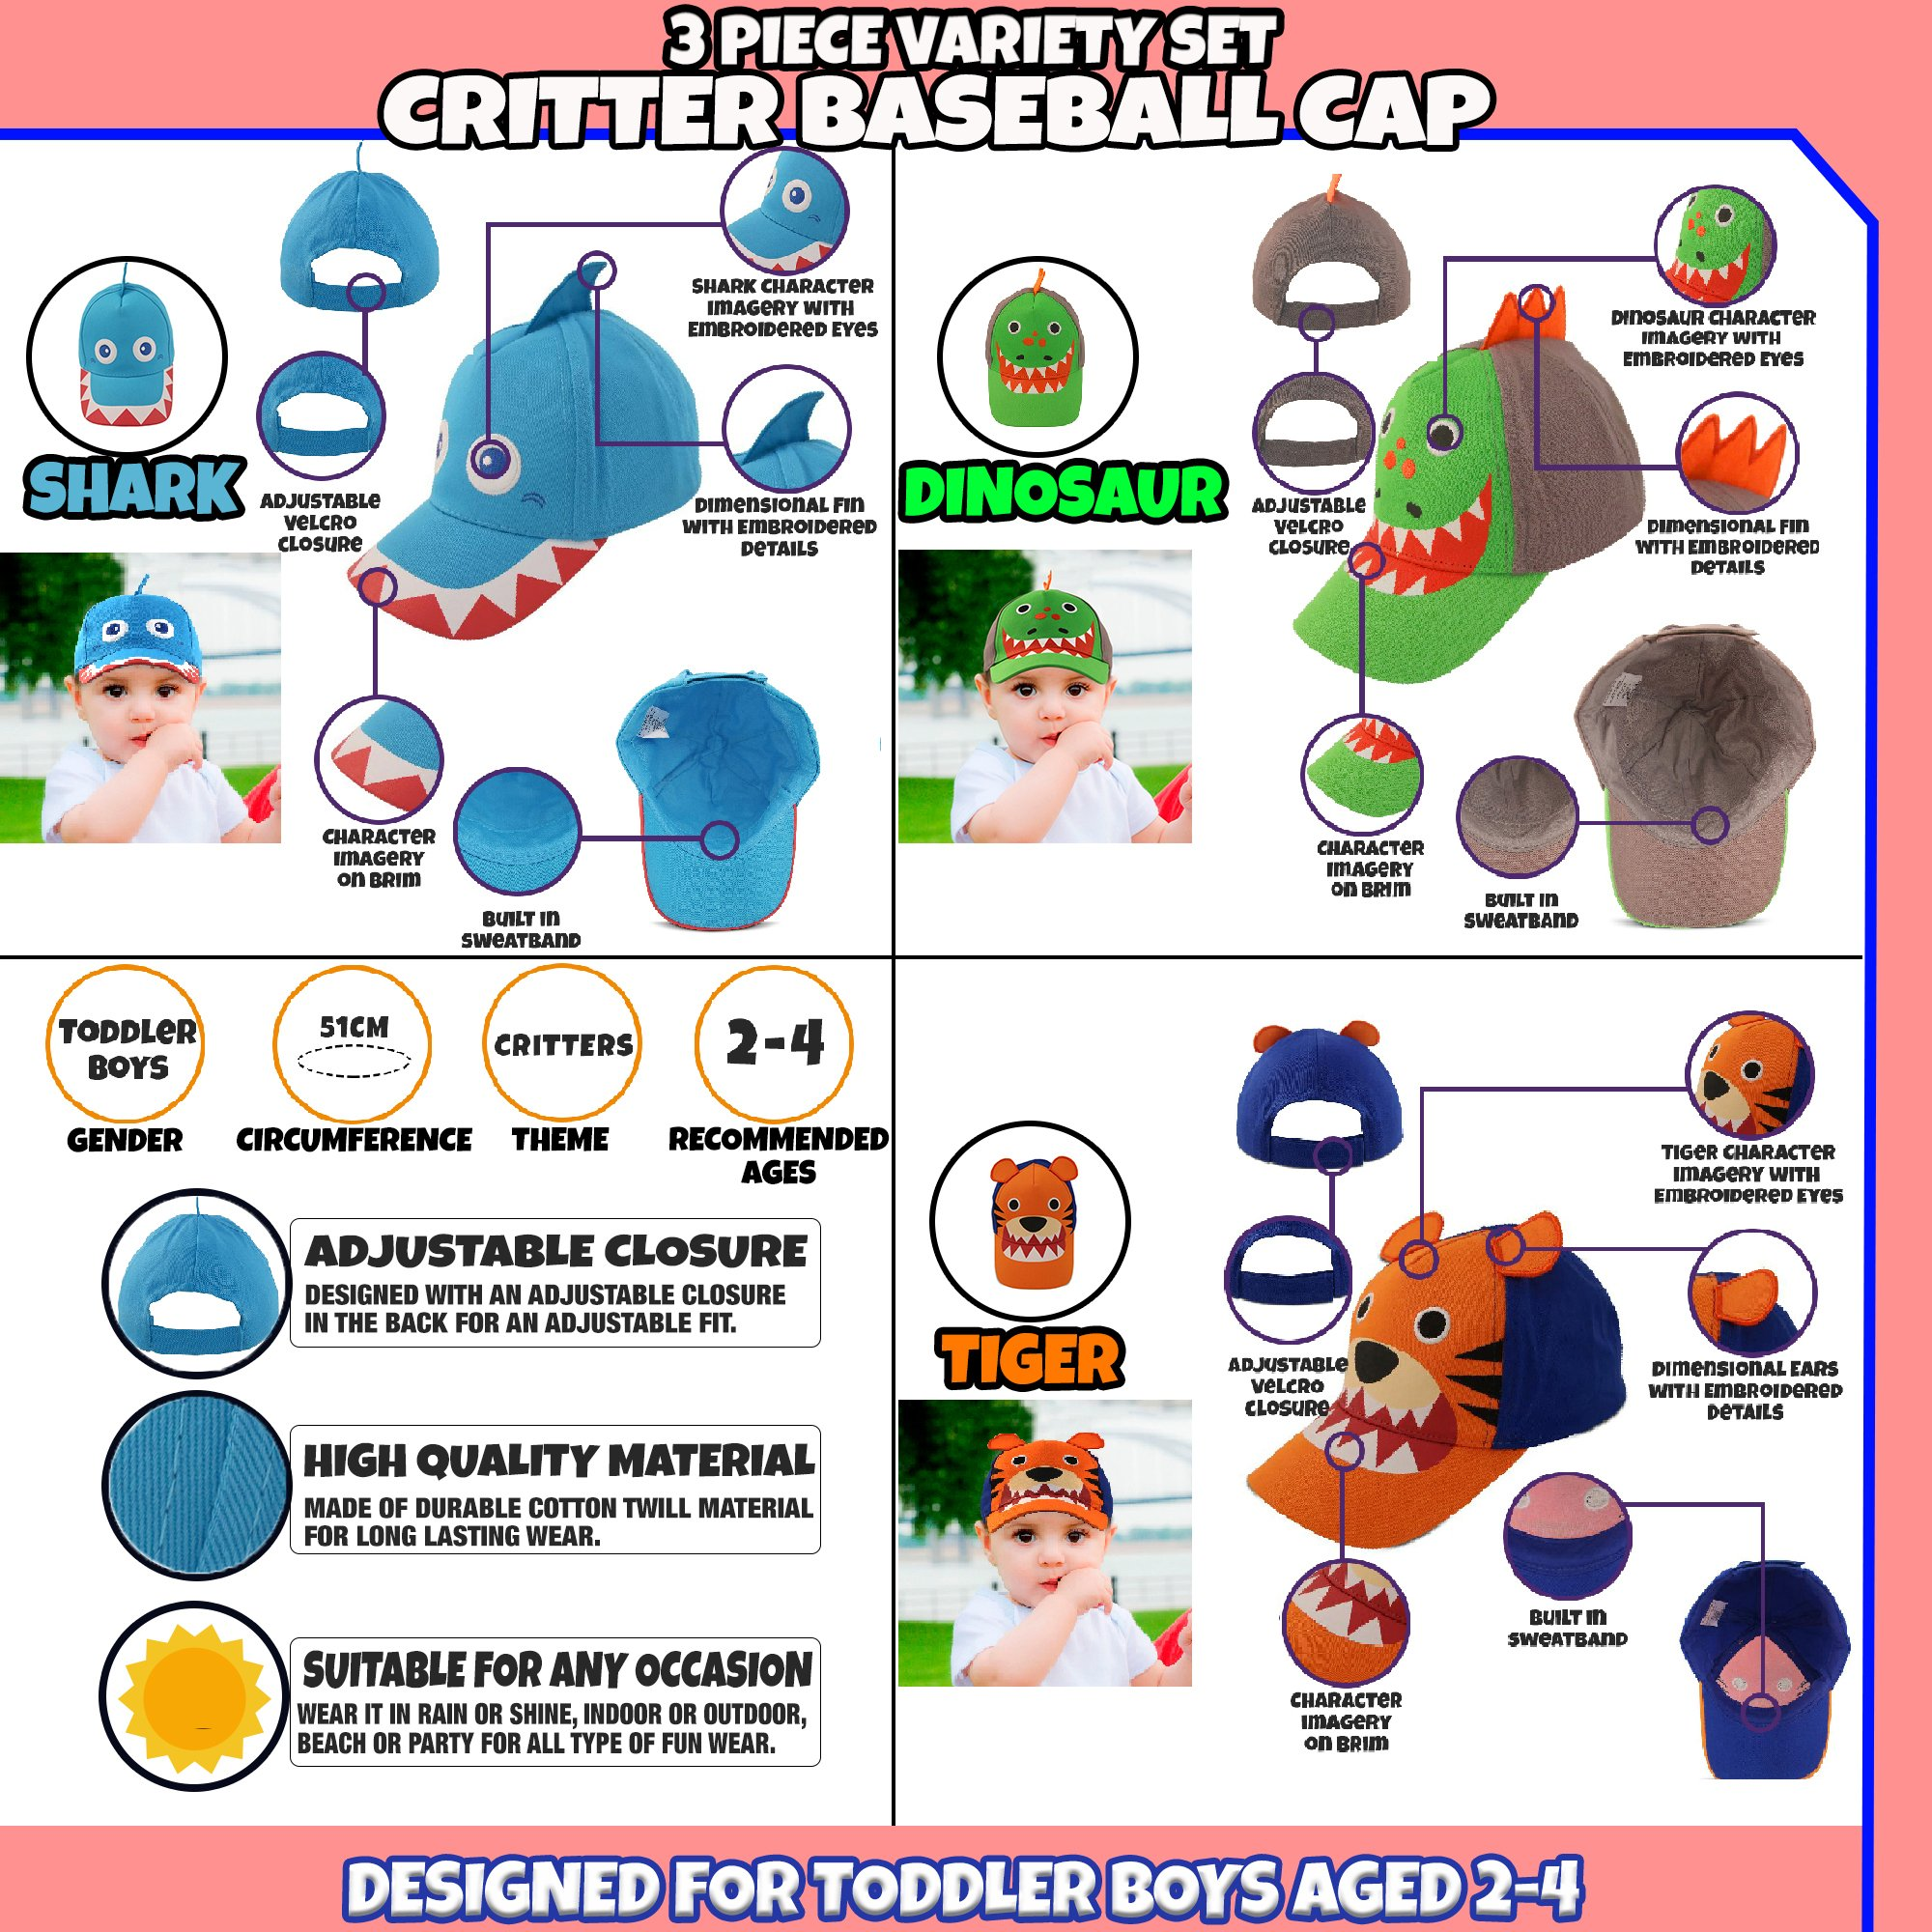 ABG Accessories Toddler Boys Cotton Baseball Cap with Assorted Animal Critter Designs, Age 2-4 (3 Piece Variety Design Pack) by ABG Accessories (Image #2)